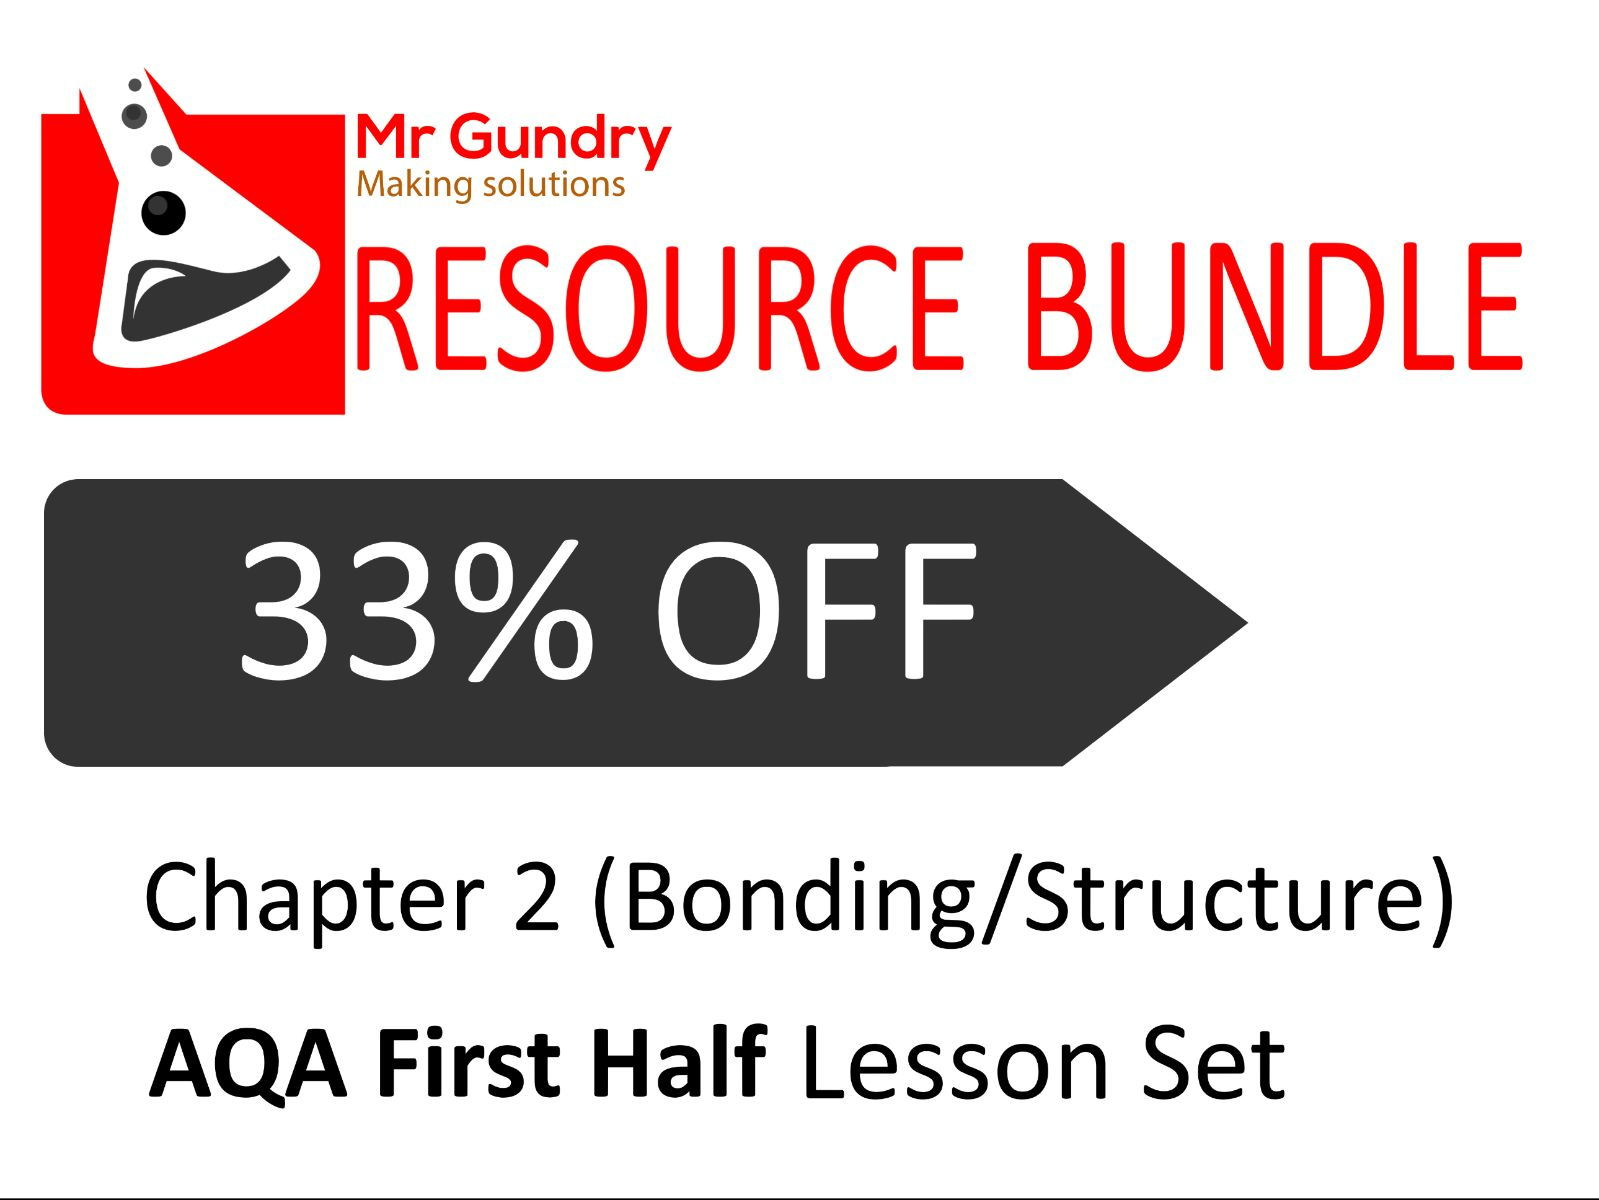 AQA (Bonding and Structure) Lesson Set